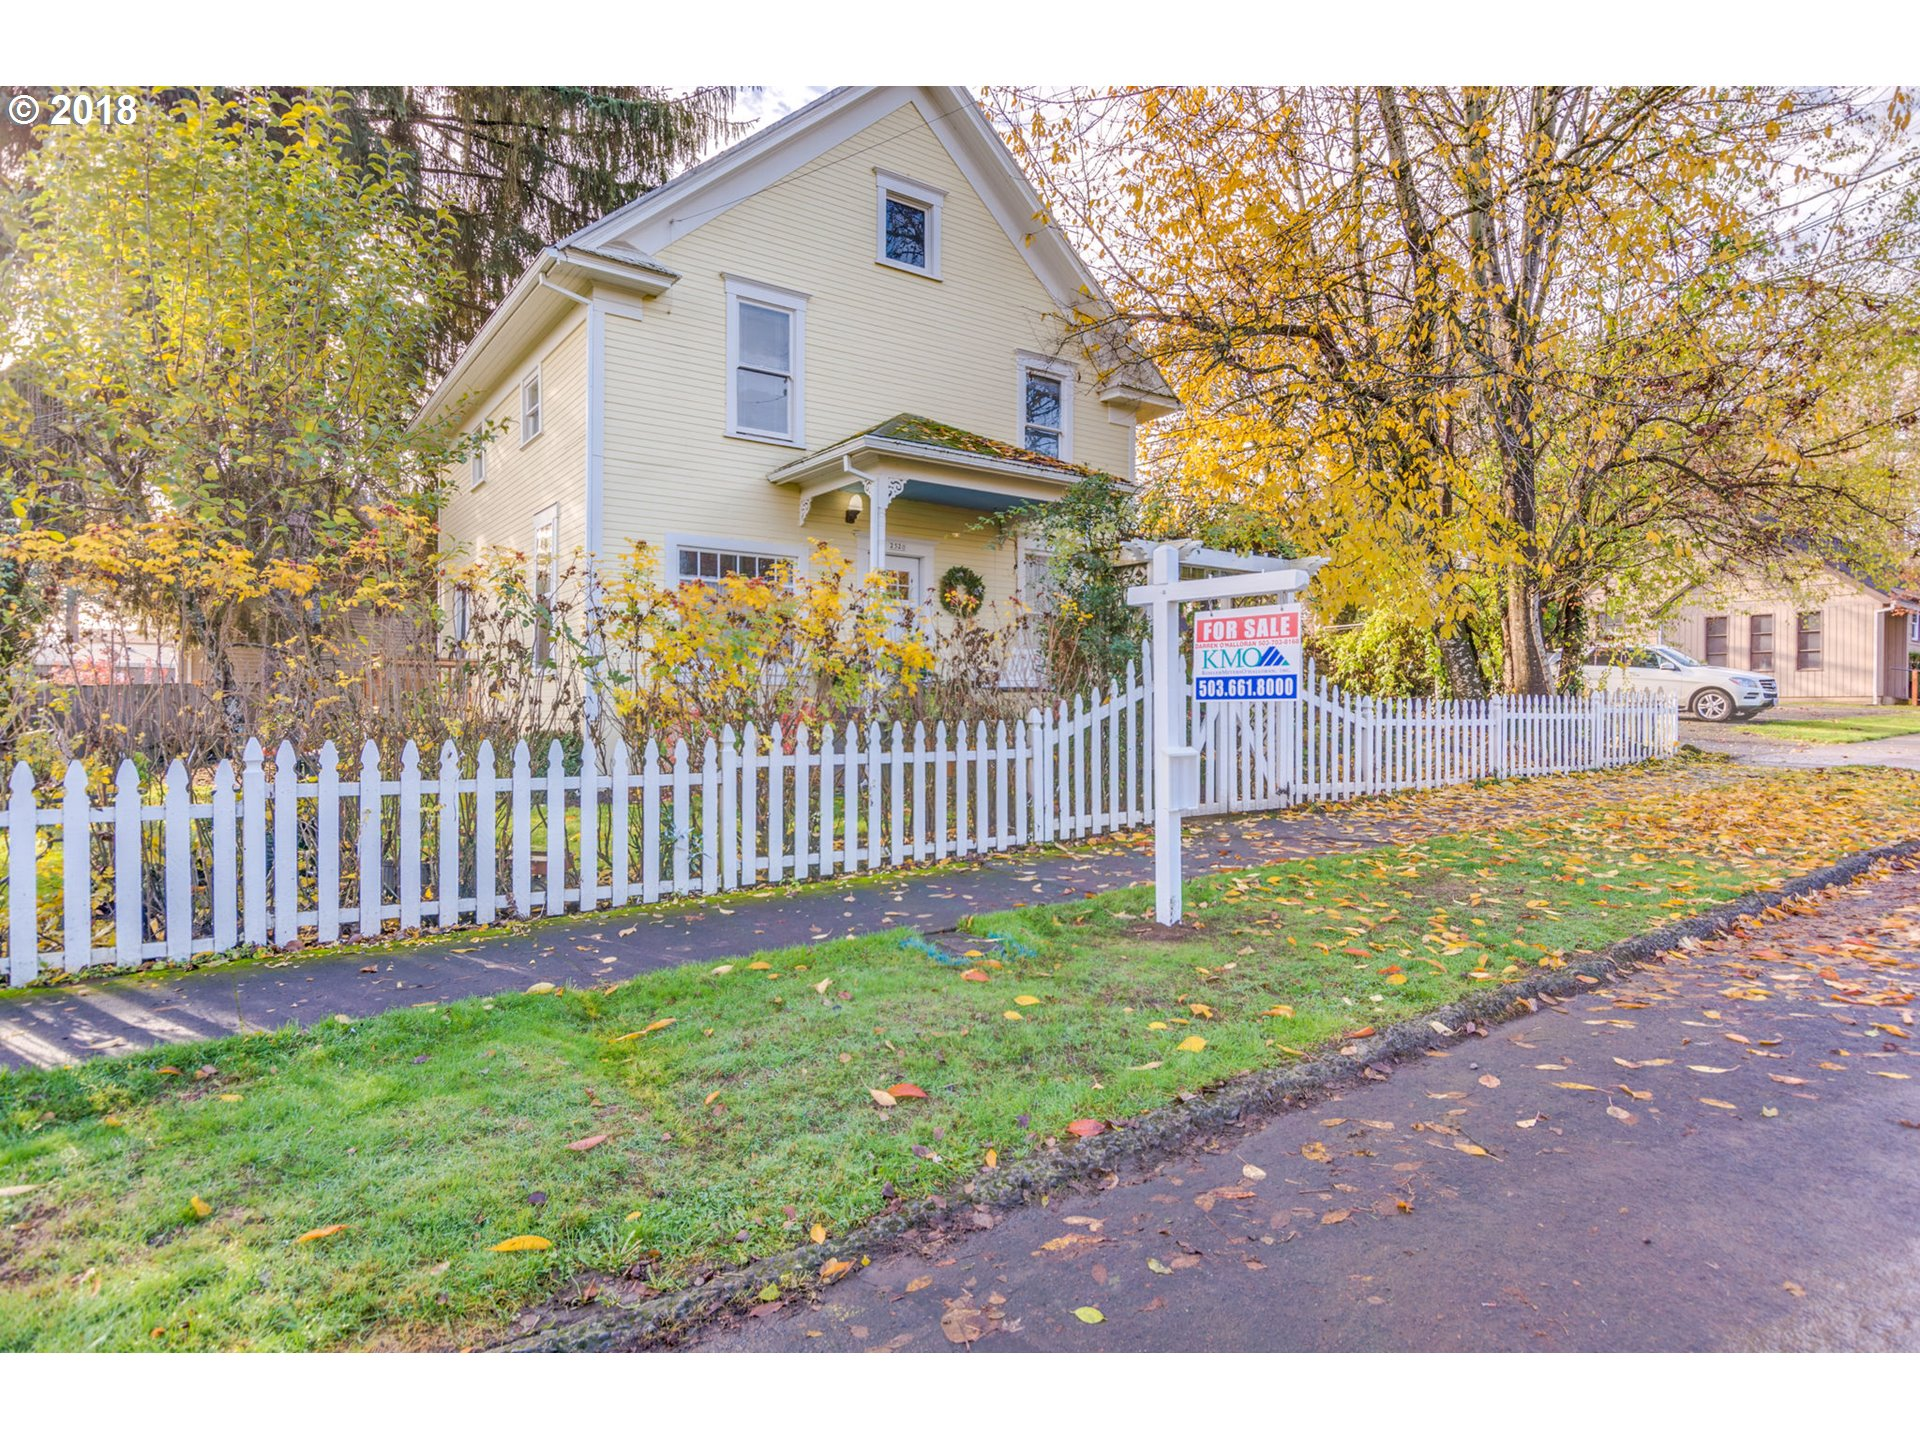 2520 18TH AVE Forest Grove, OR 97116 - MLS #: 18046063